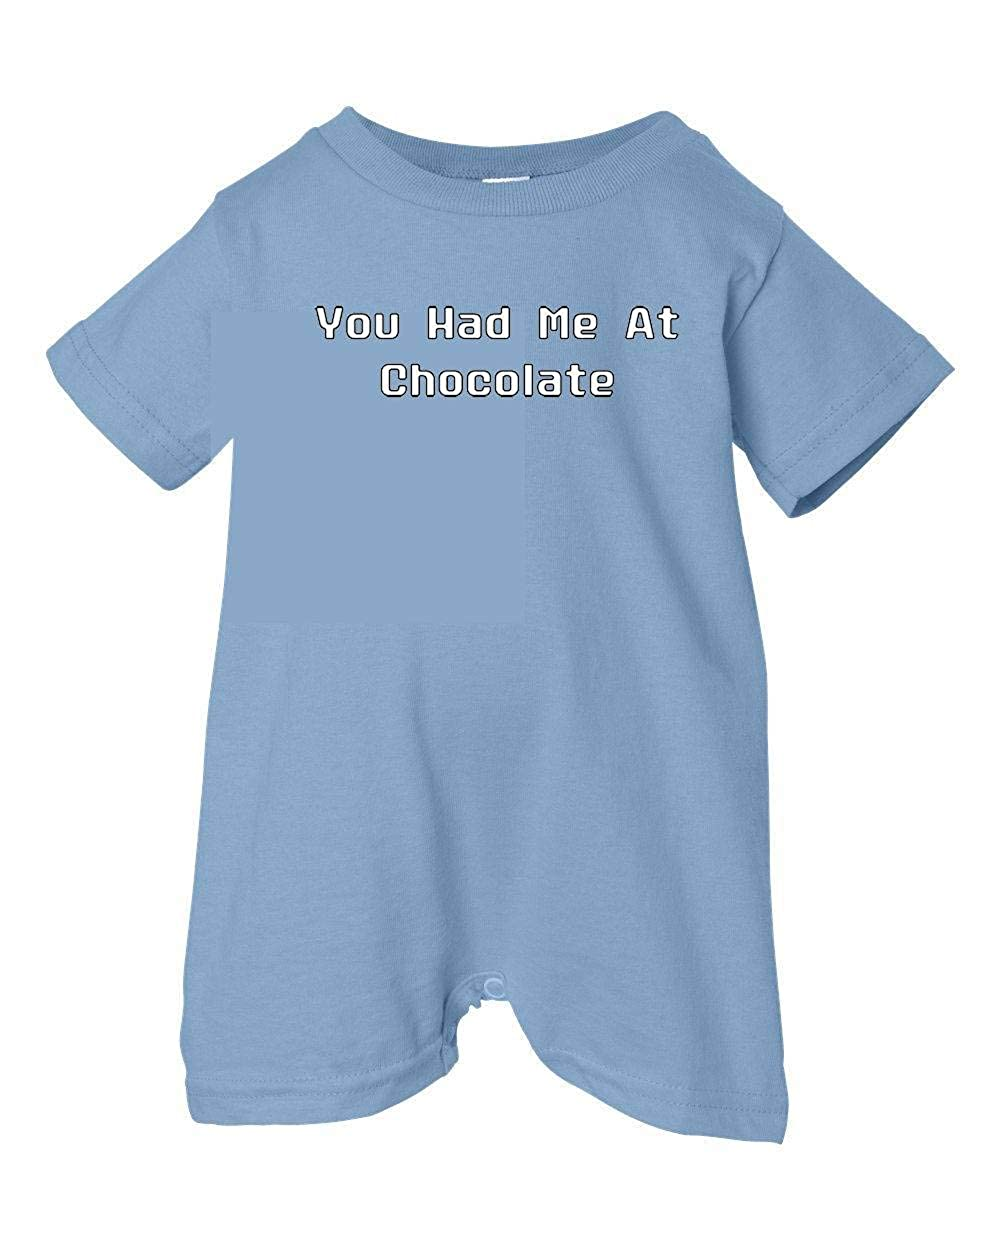 Tasty Threads Unisex Baby You Had Me At Chocolate T-Shirt Romper Lt. Blue, 24 Months